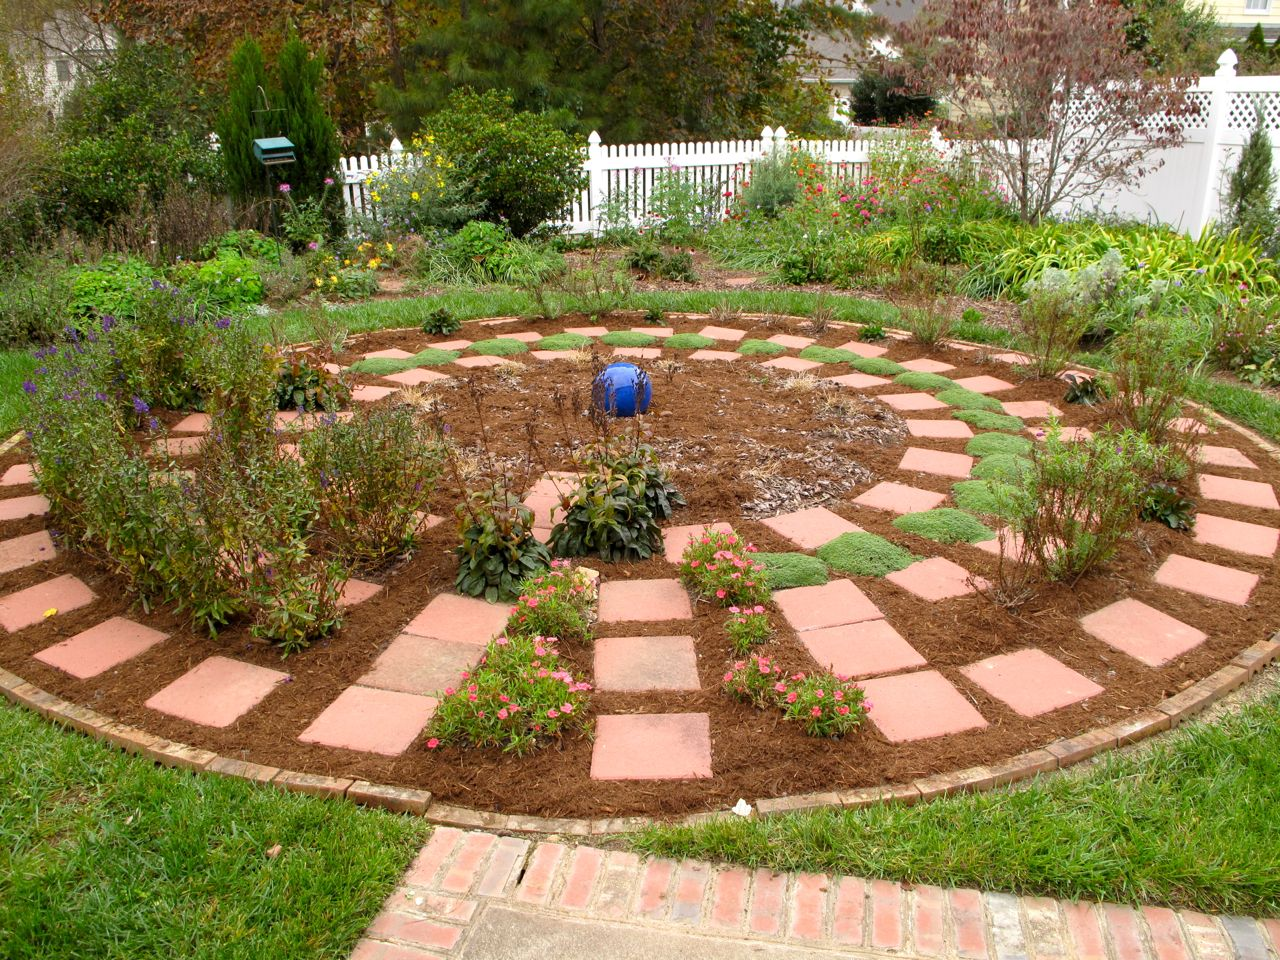 Meditation garden ideas on pinterest meditation garden for Garden ideas and designs photos